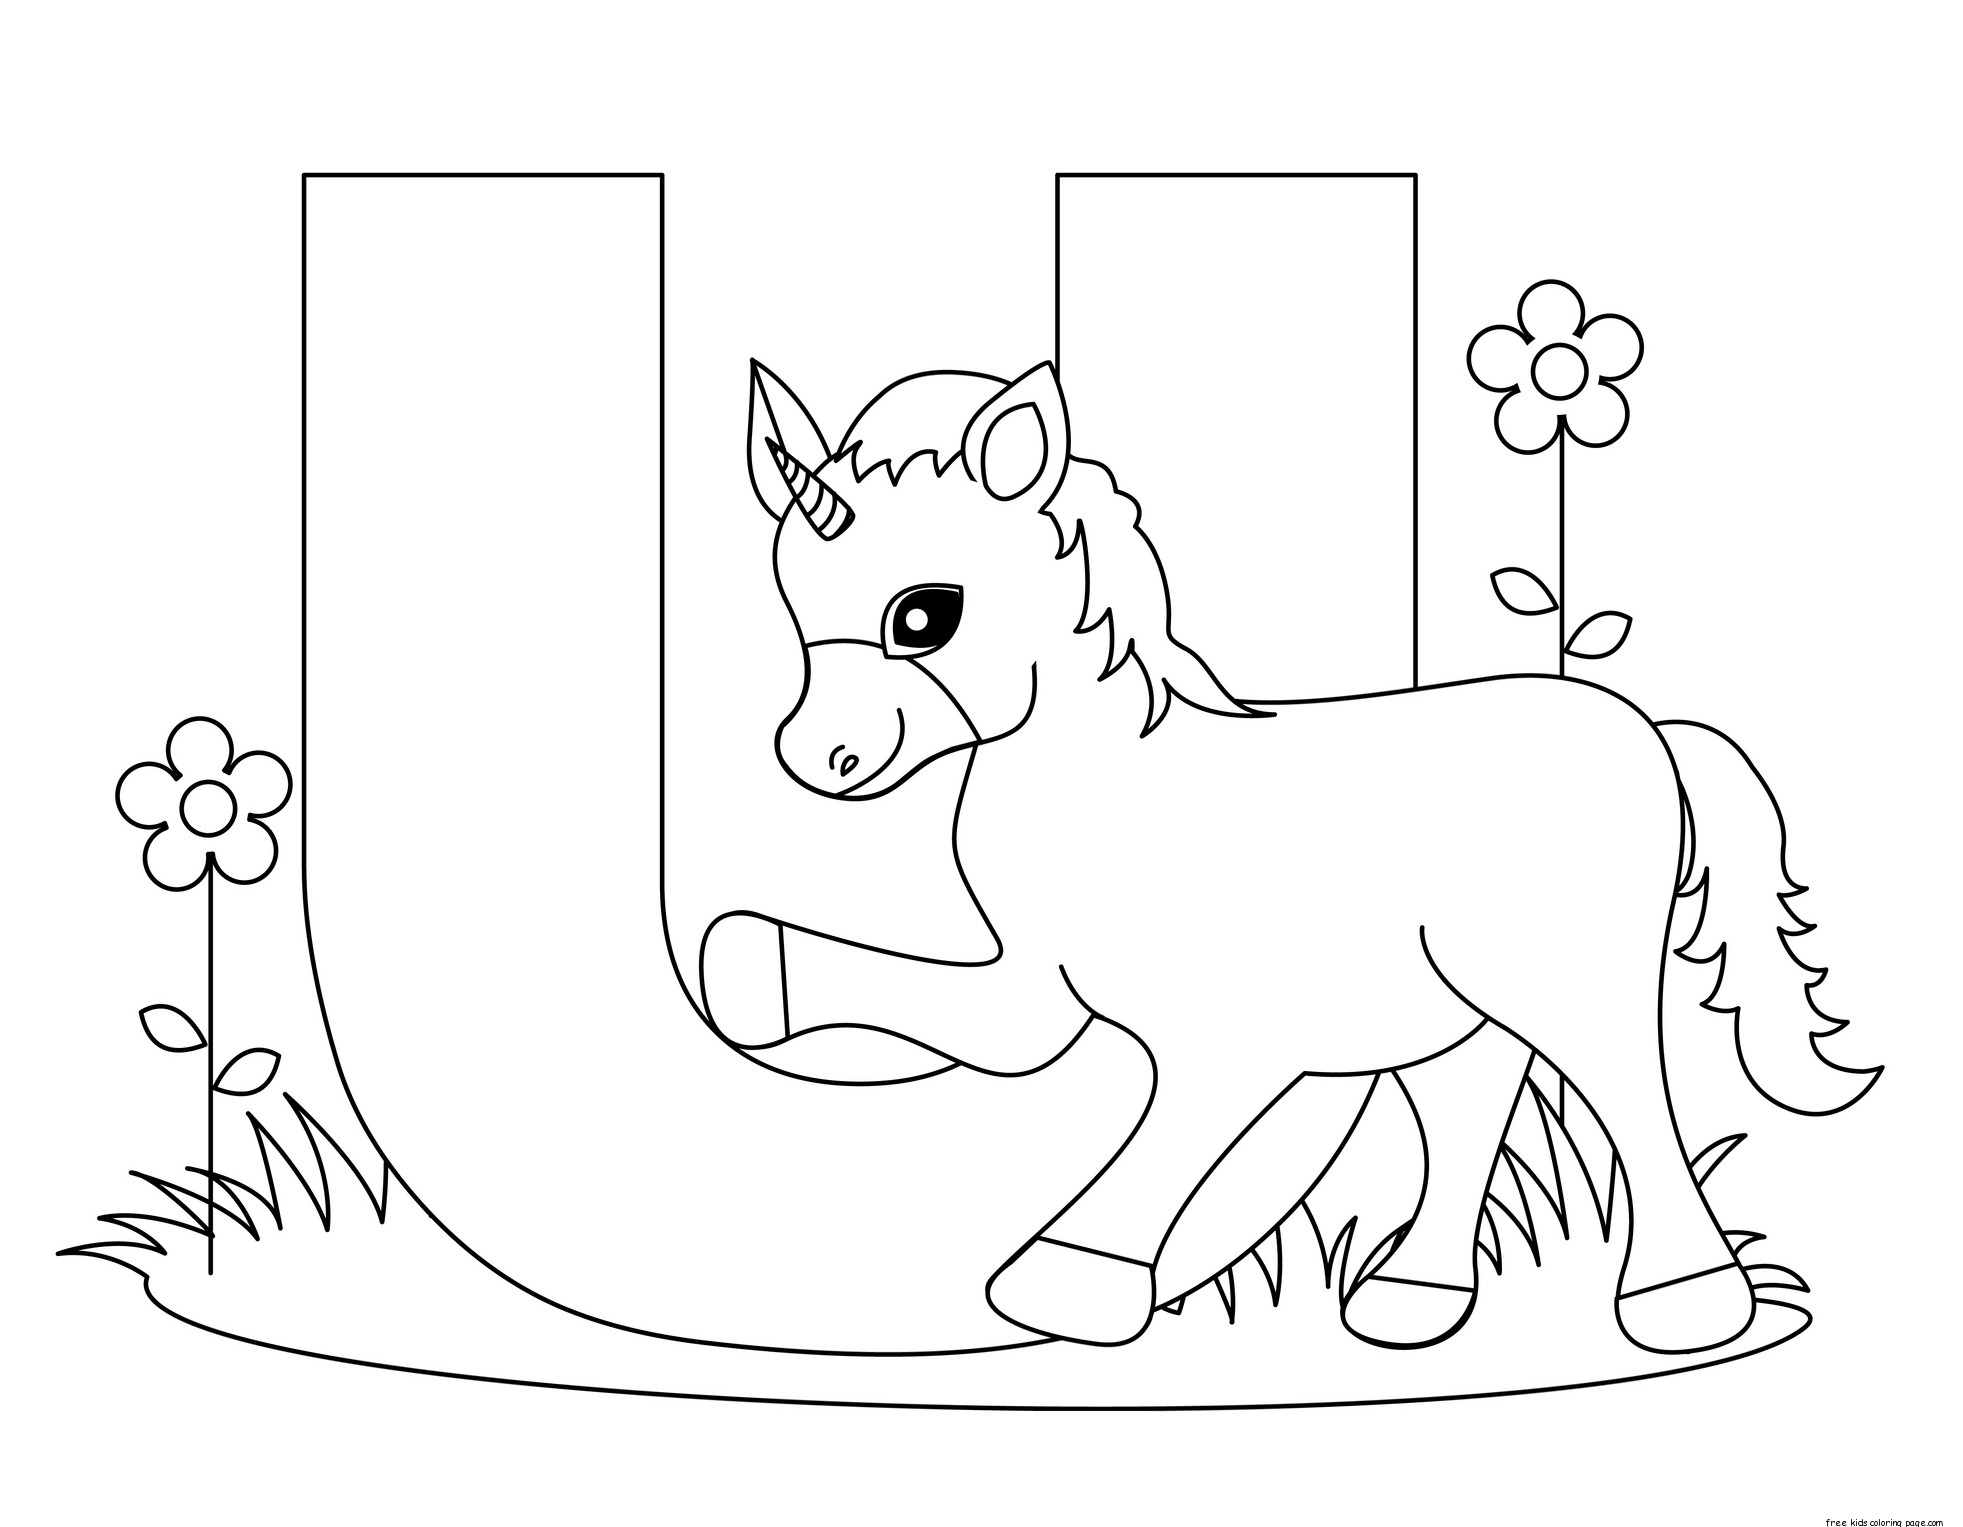 q coloring pages for kids - photo #36